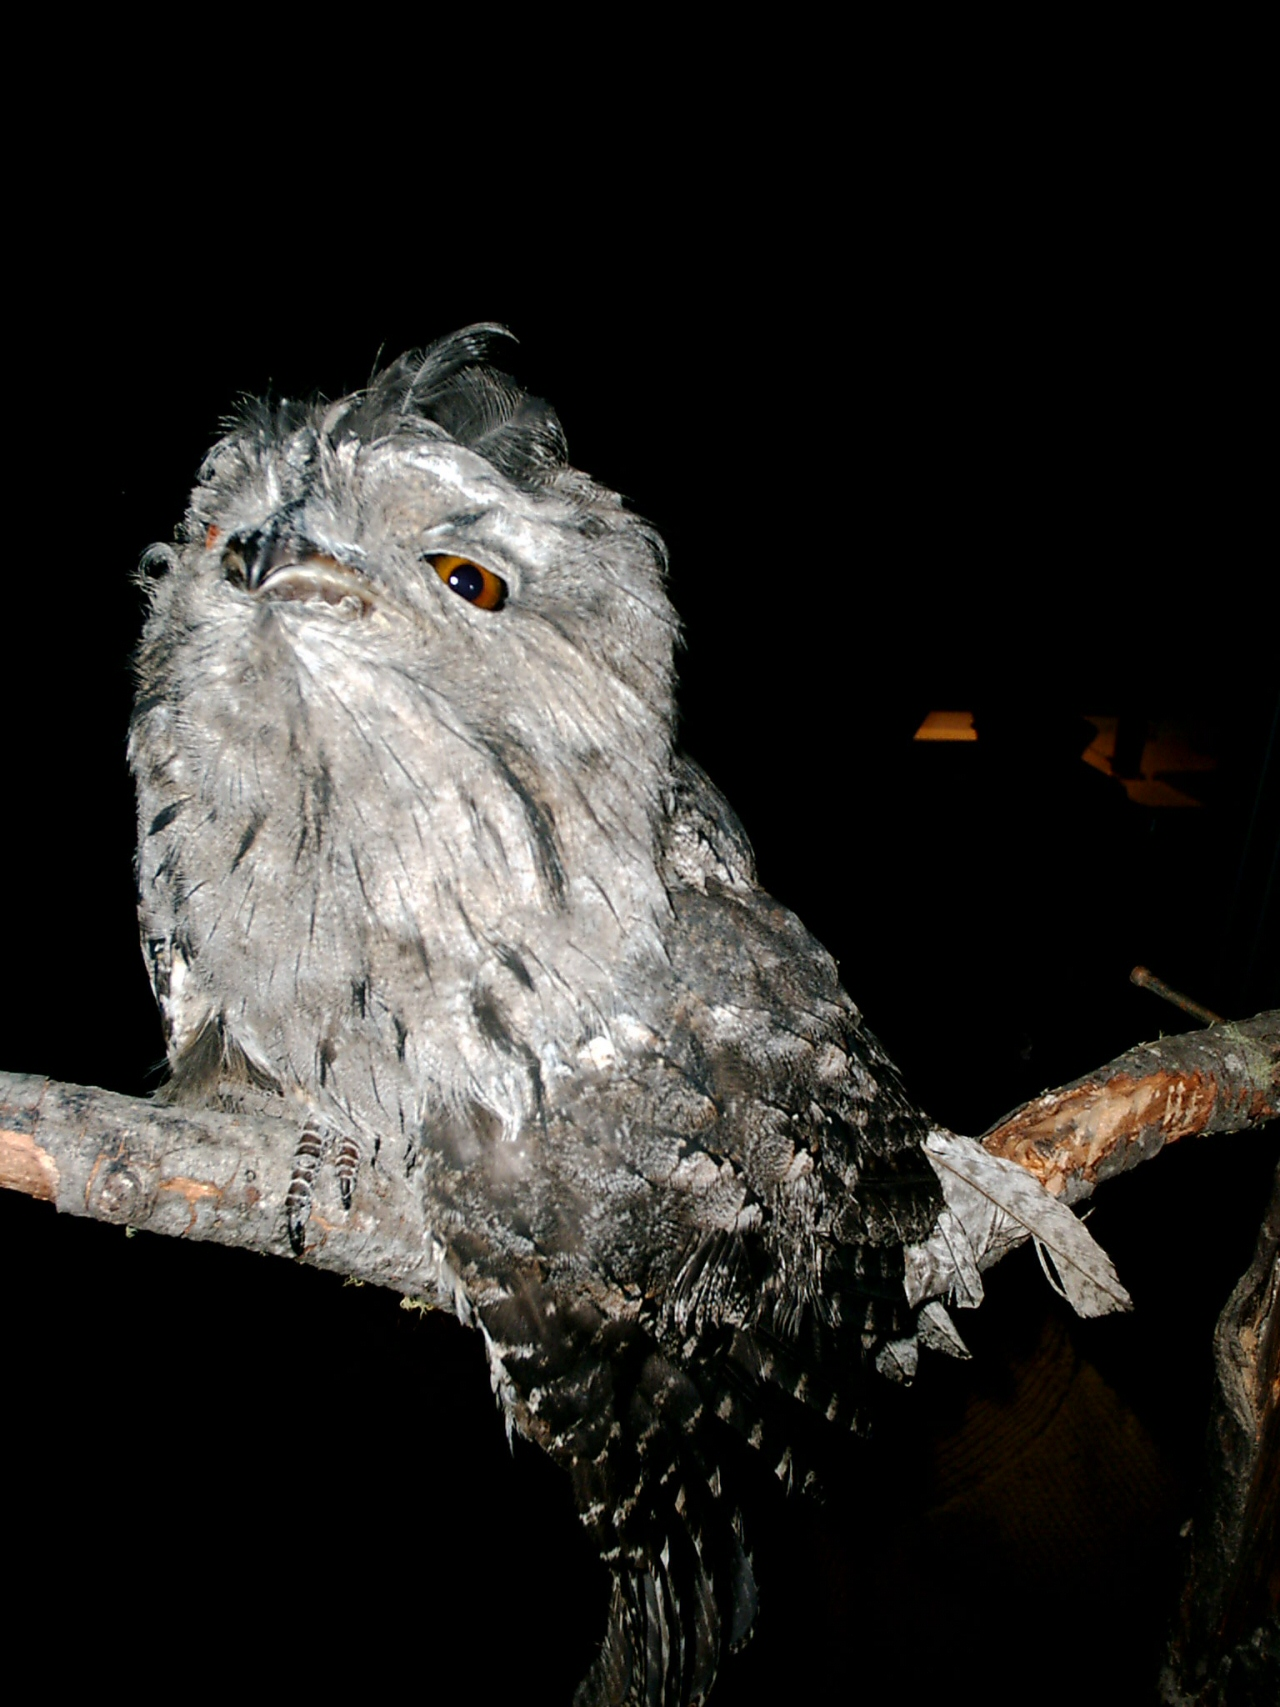 Tawny Frogmouth at Huon Bush Retreats